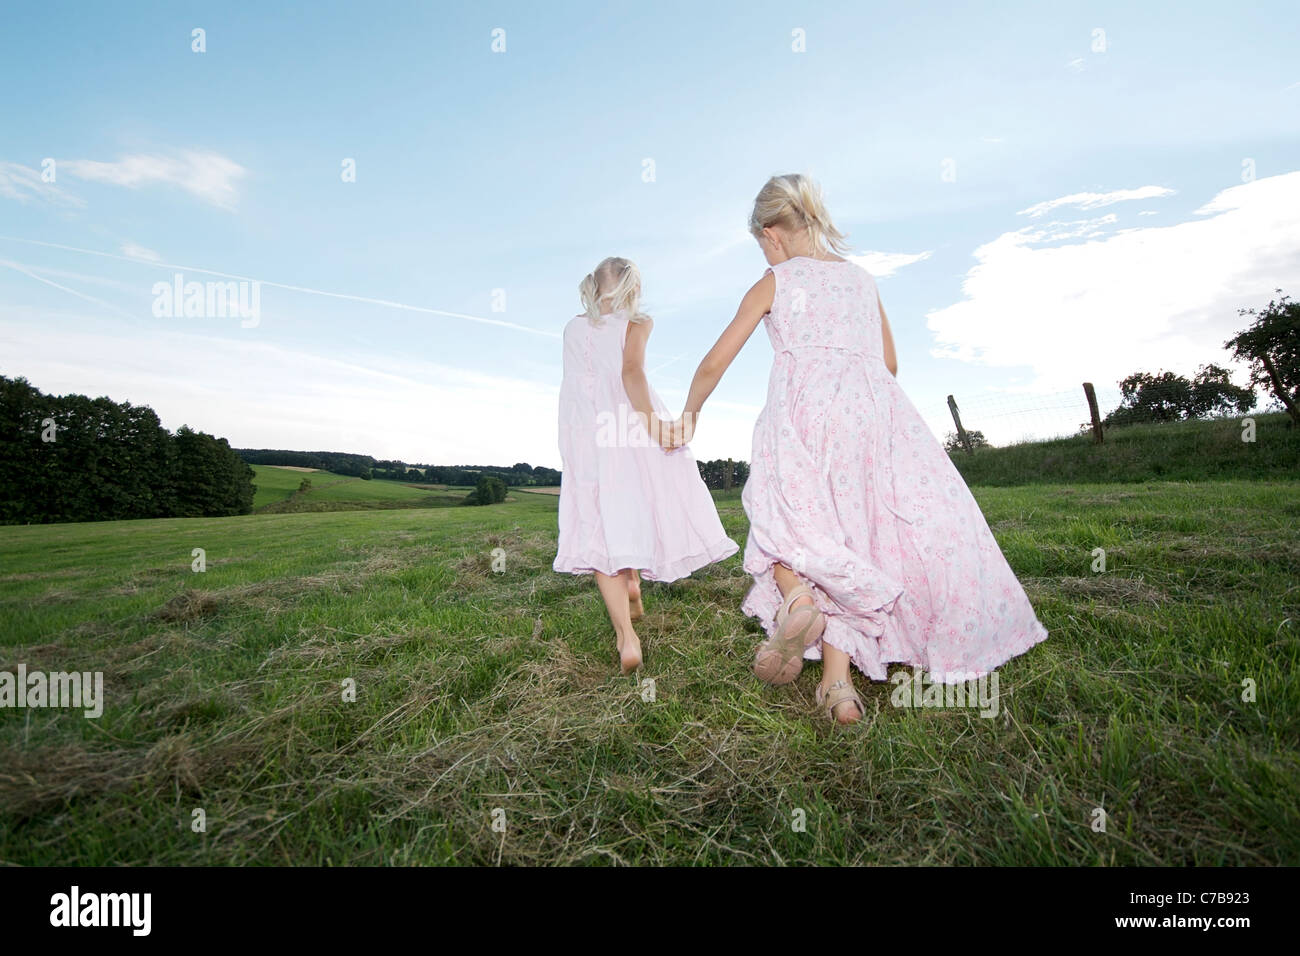 Girls running across a meadow in summer, Eyendorf, Lower Saxony, Germany, Europe - Stock Image